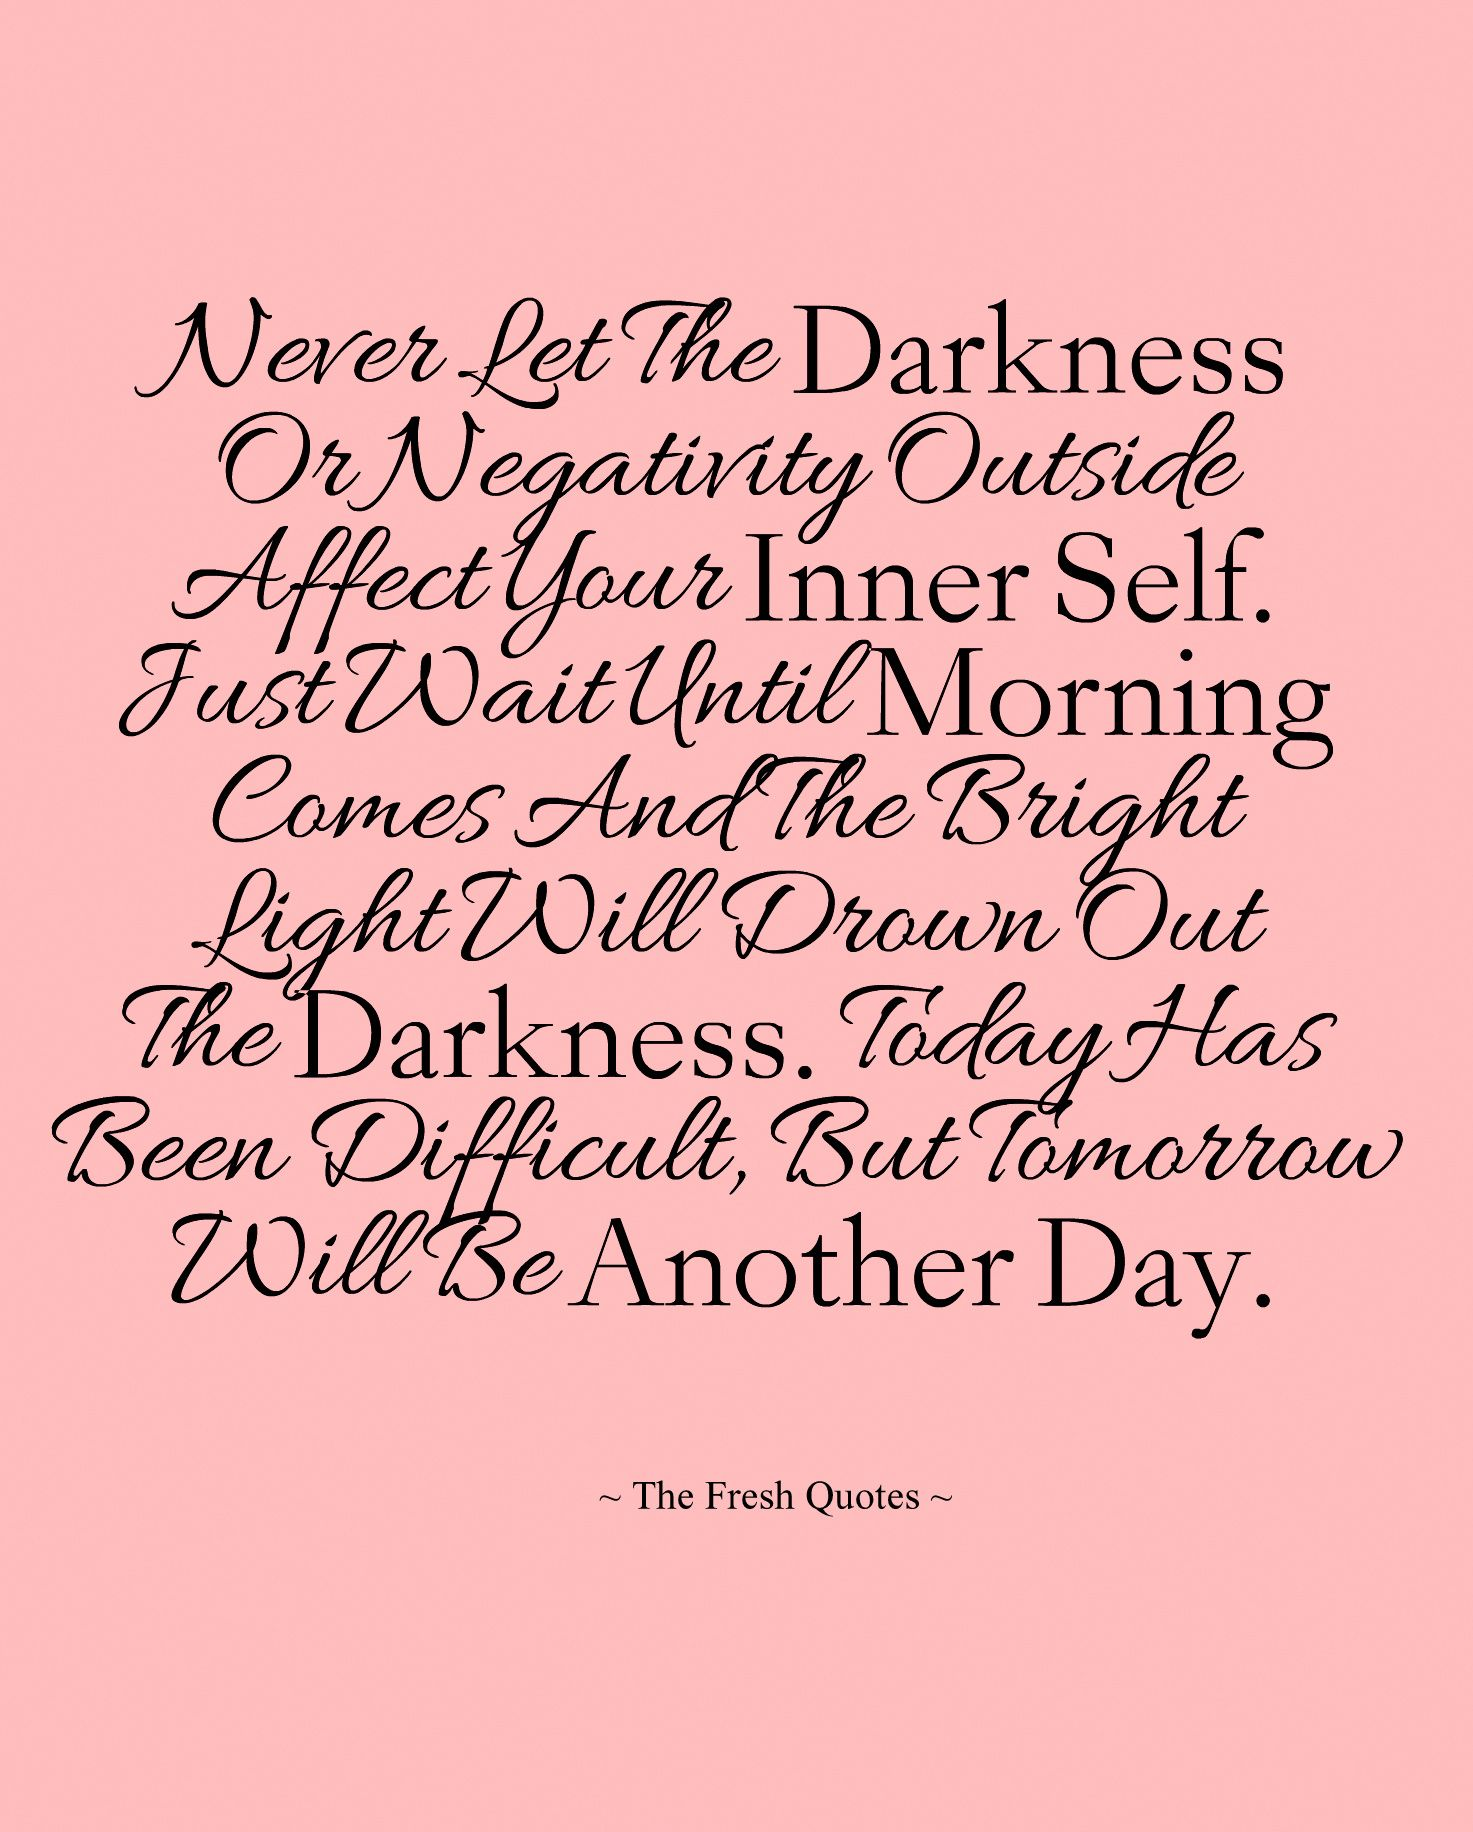 Celebration Of Life Quotes And Sayings Neverletthedarknessornegativityoutsideaffectyourinner